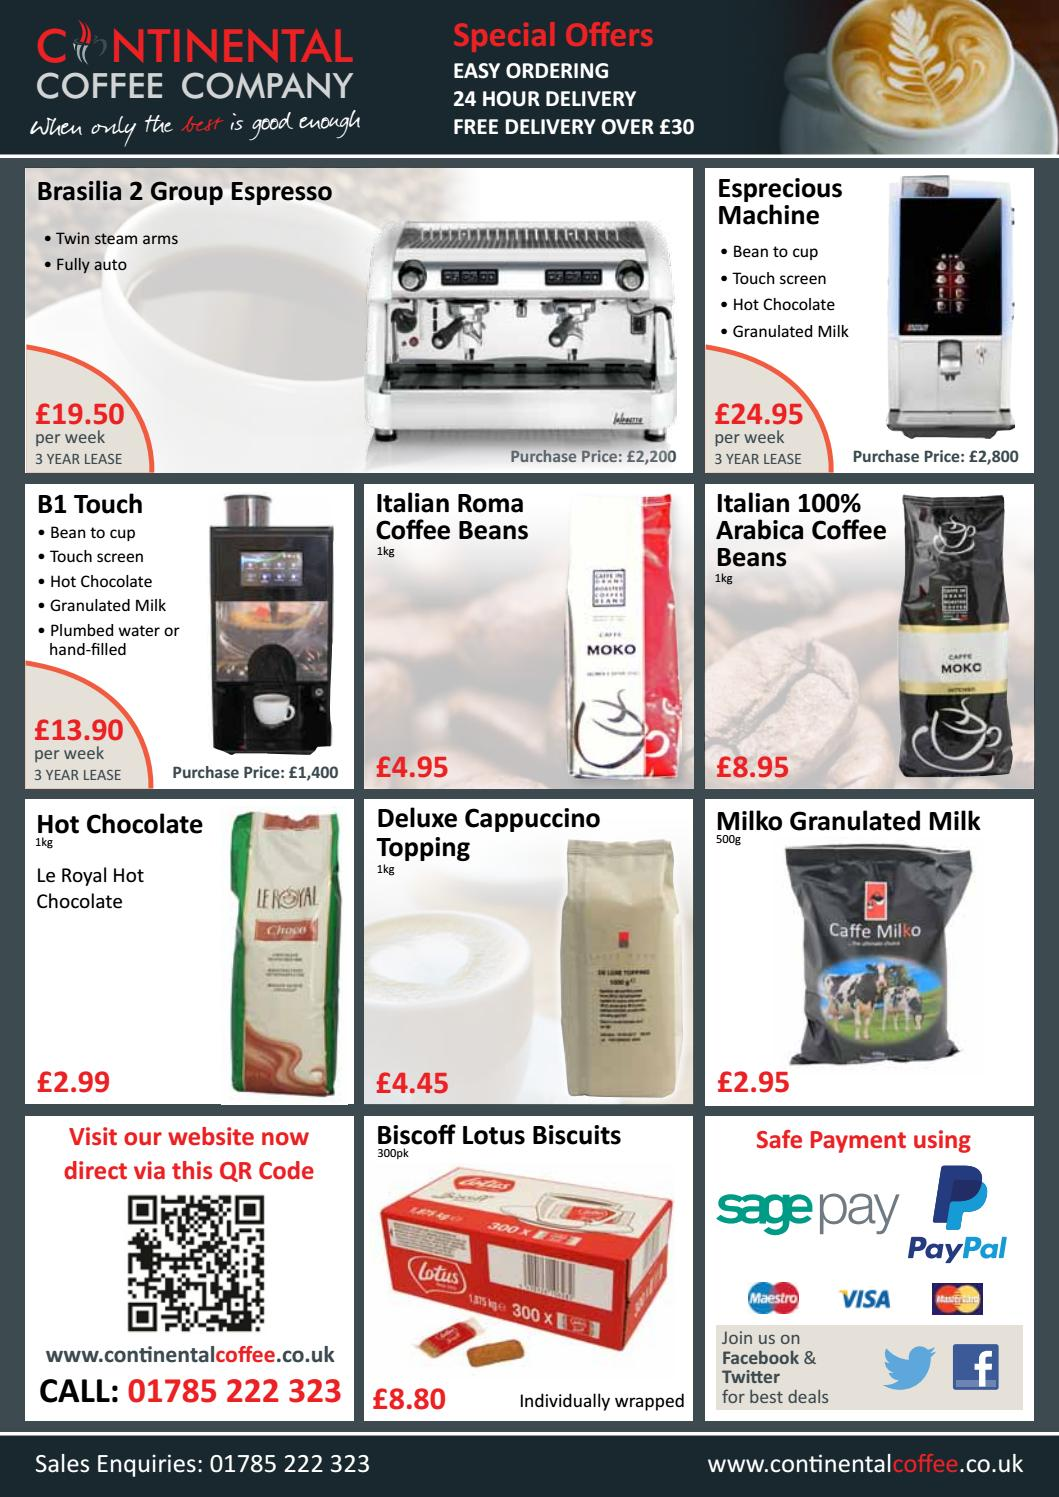 Ccc mailer leaflet issue 6 a4 4 page catering [ken] by CIM Online